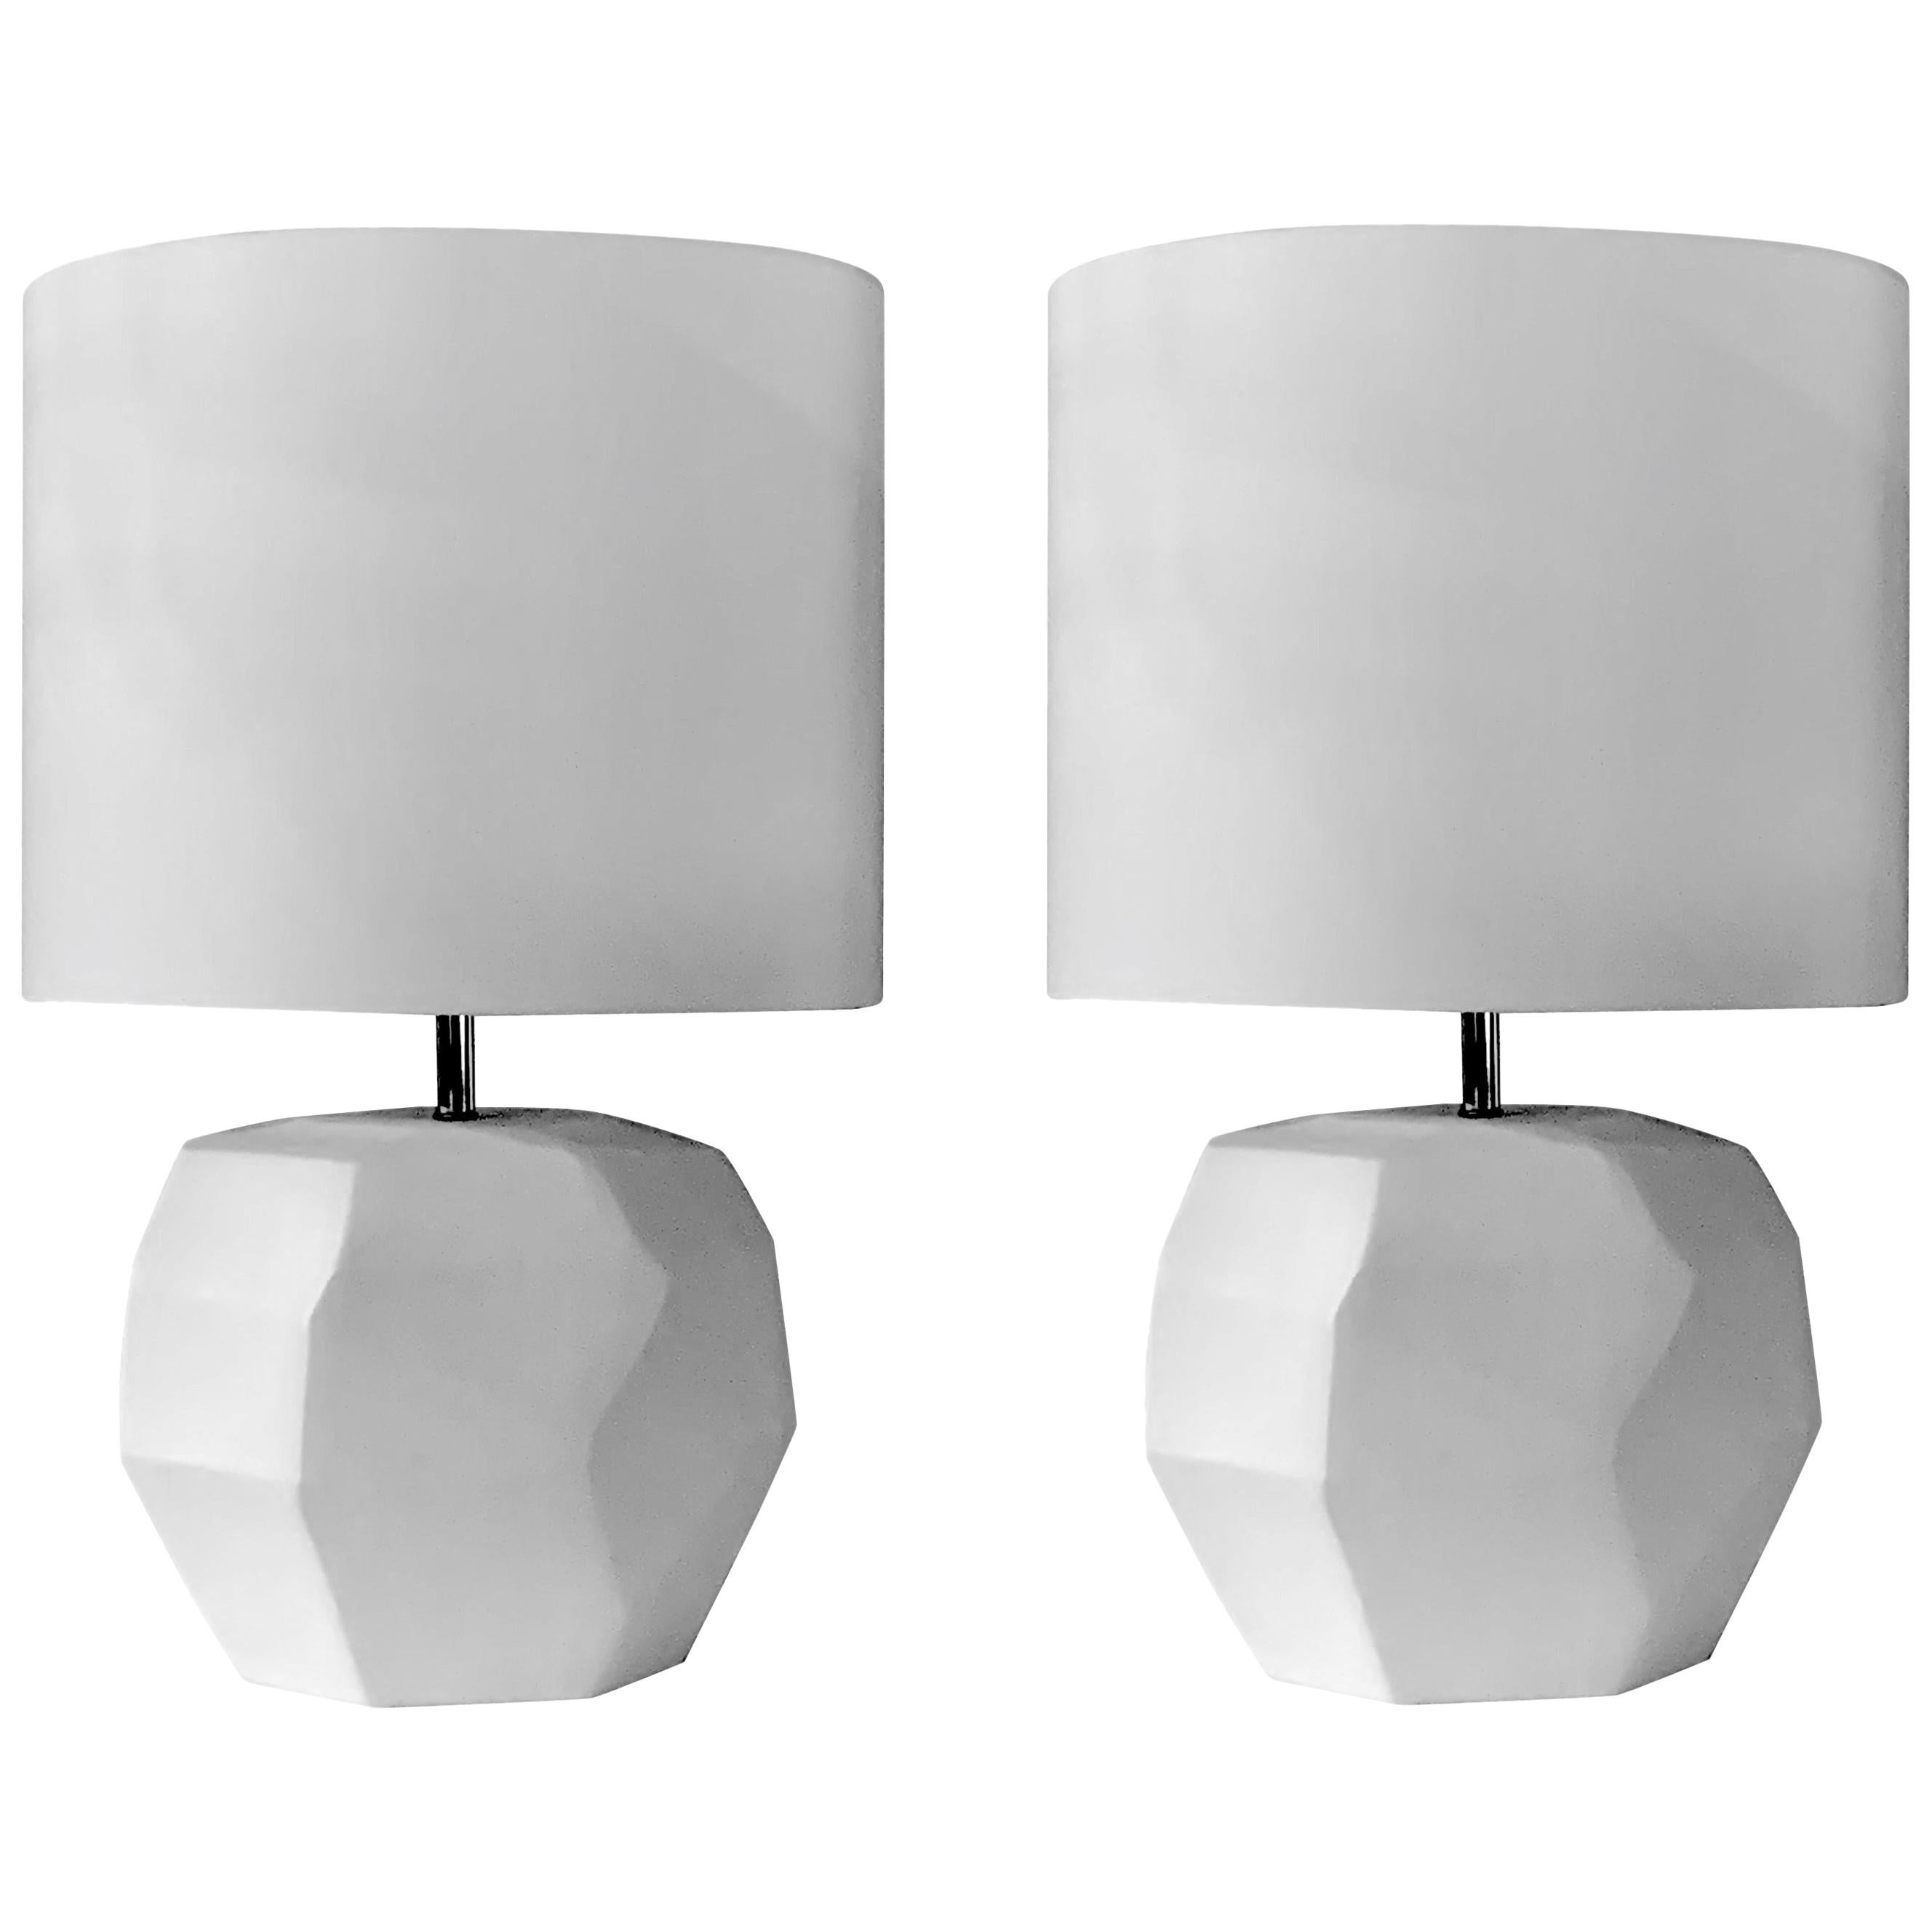 Matte White Glass Pair of Cubist Lamps, Romania, Contemporary